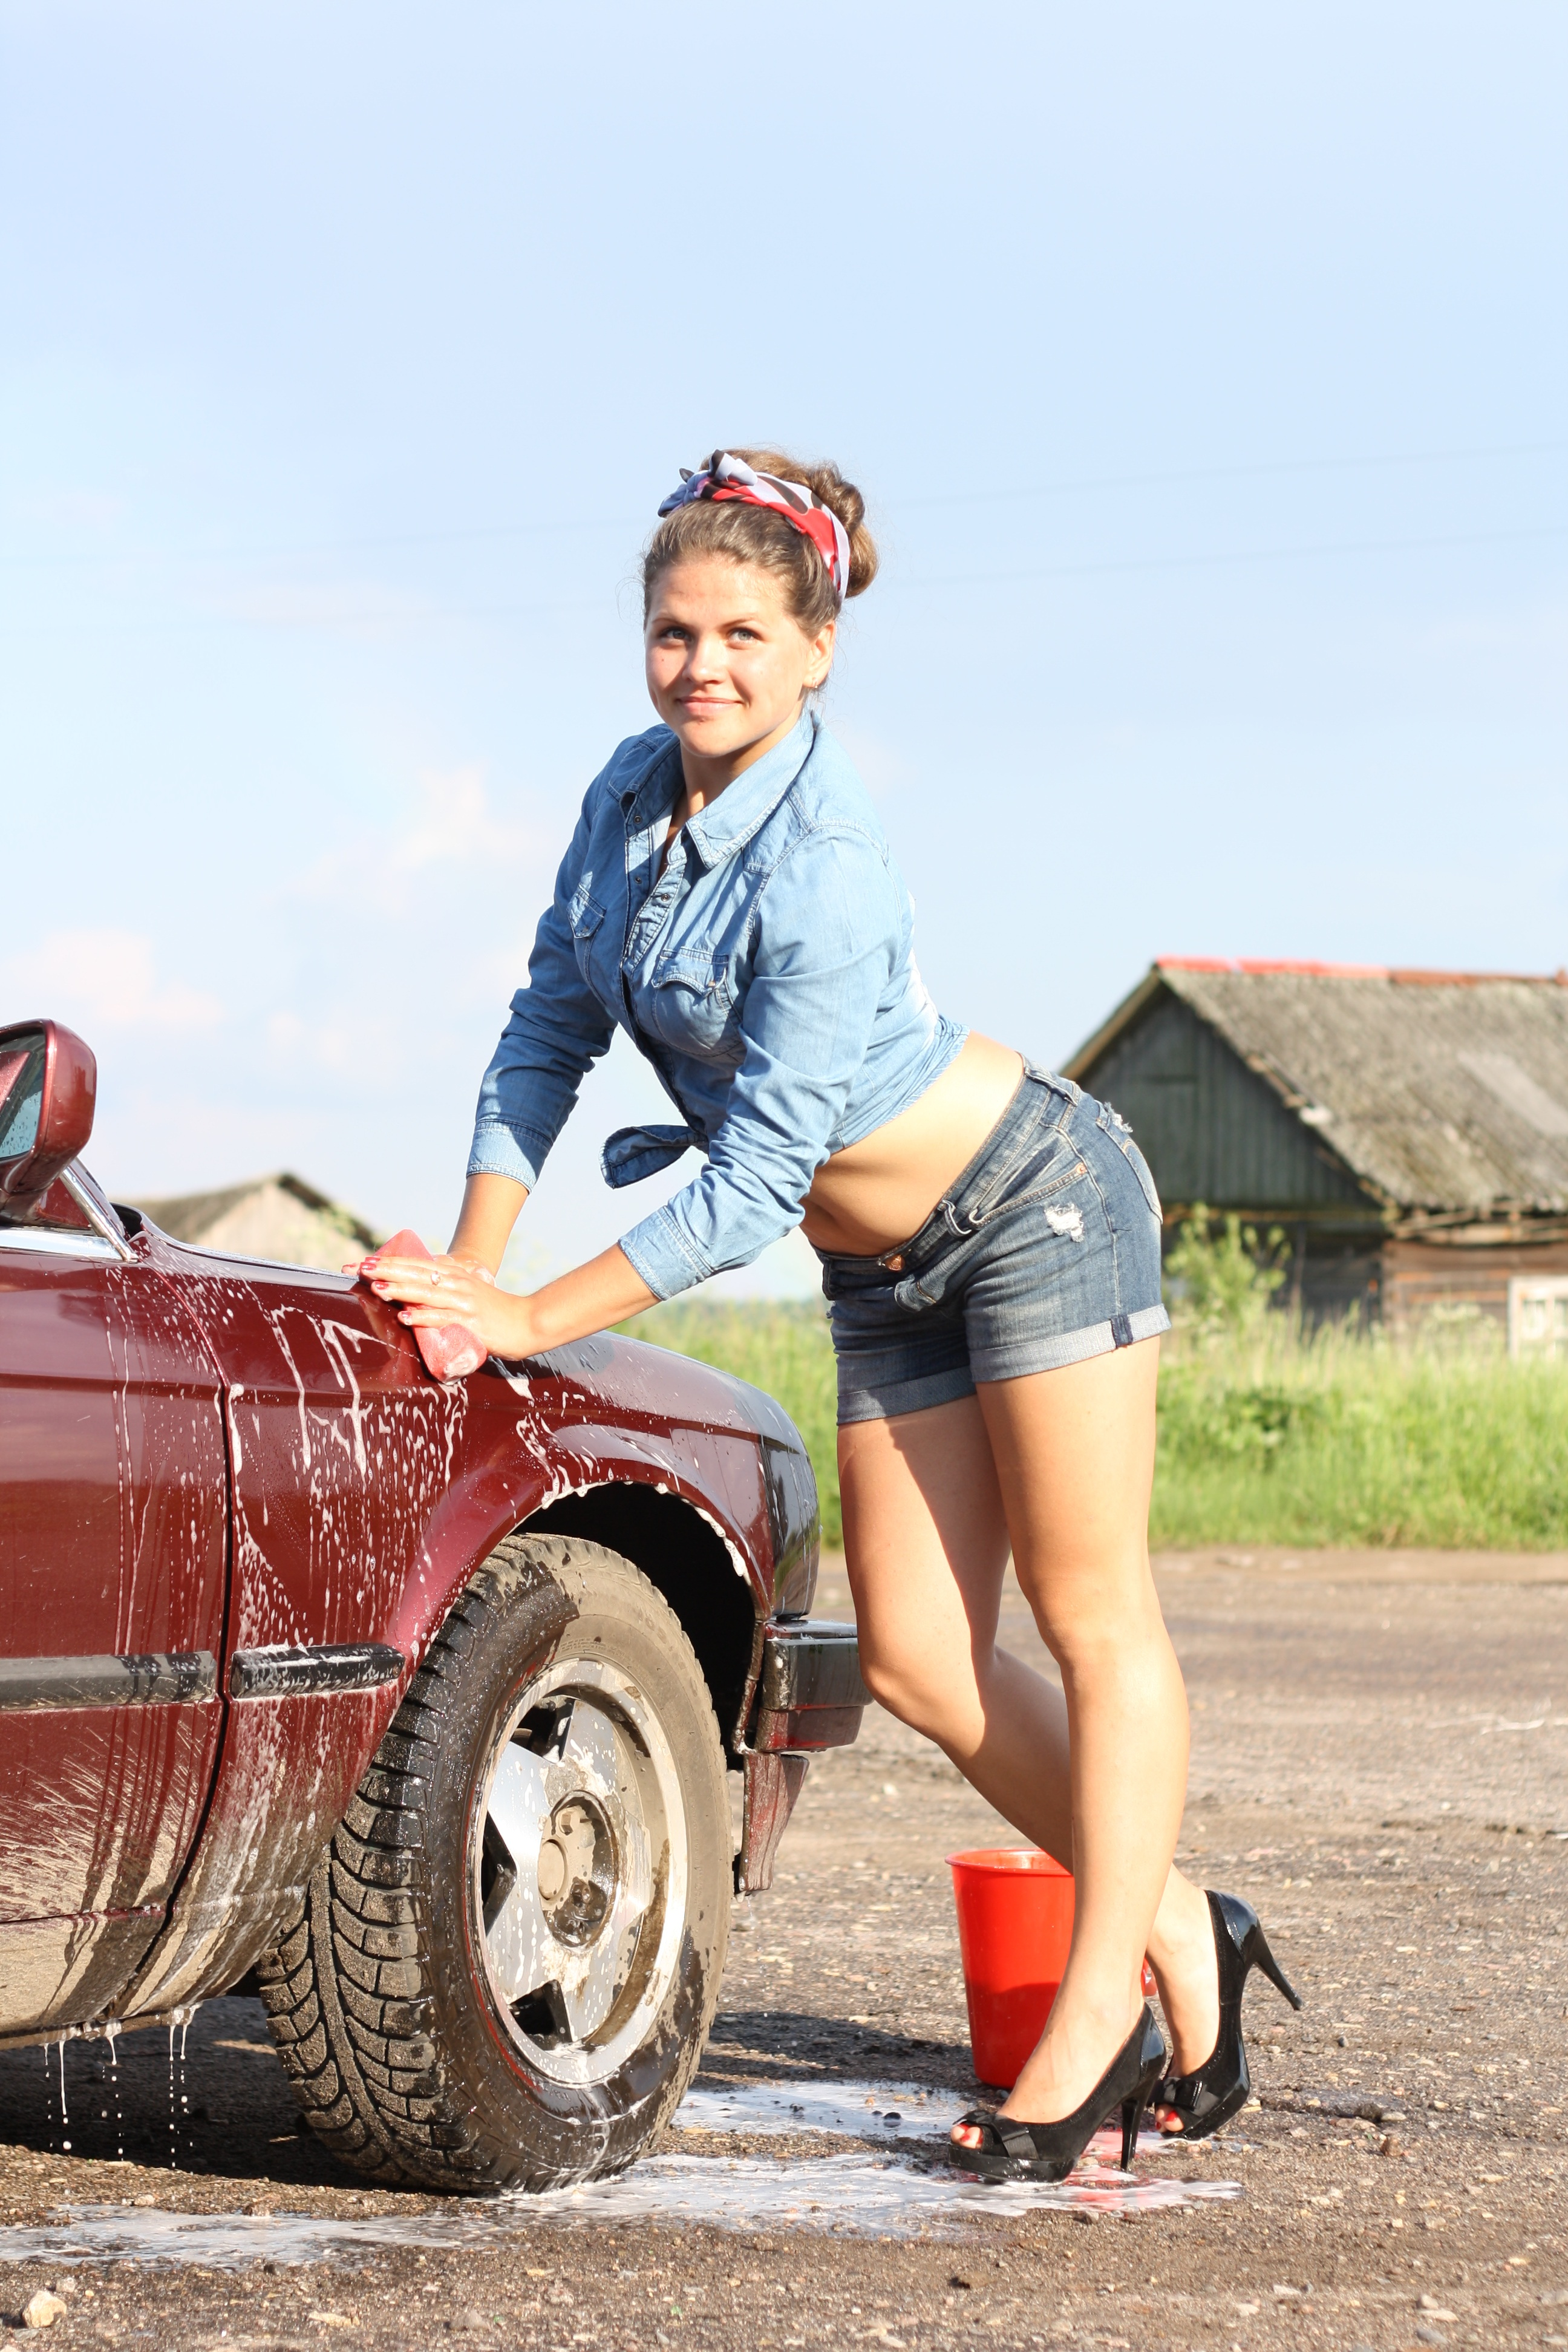 Free Wallpapers Cars And Beautiful Ladies Women S Daisy Dukes 183 Free Stock Photo